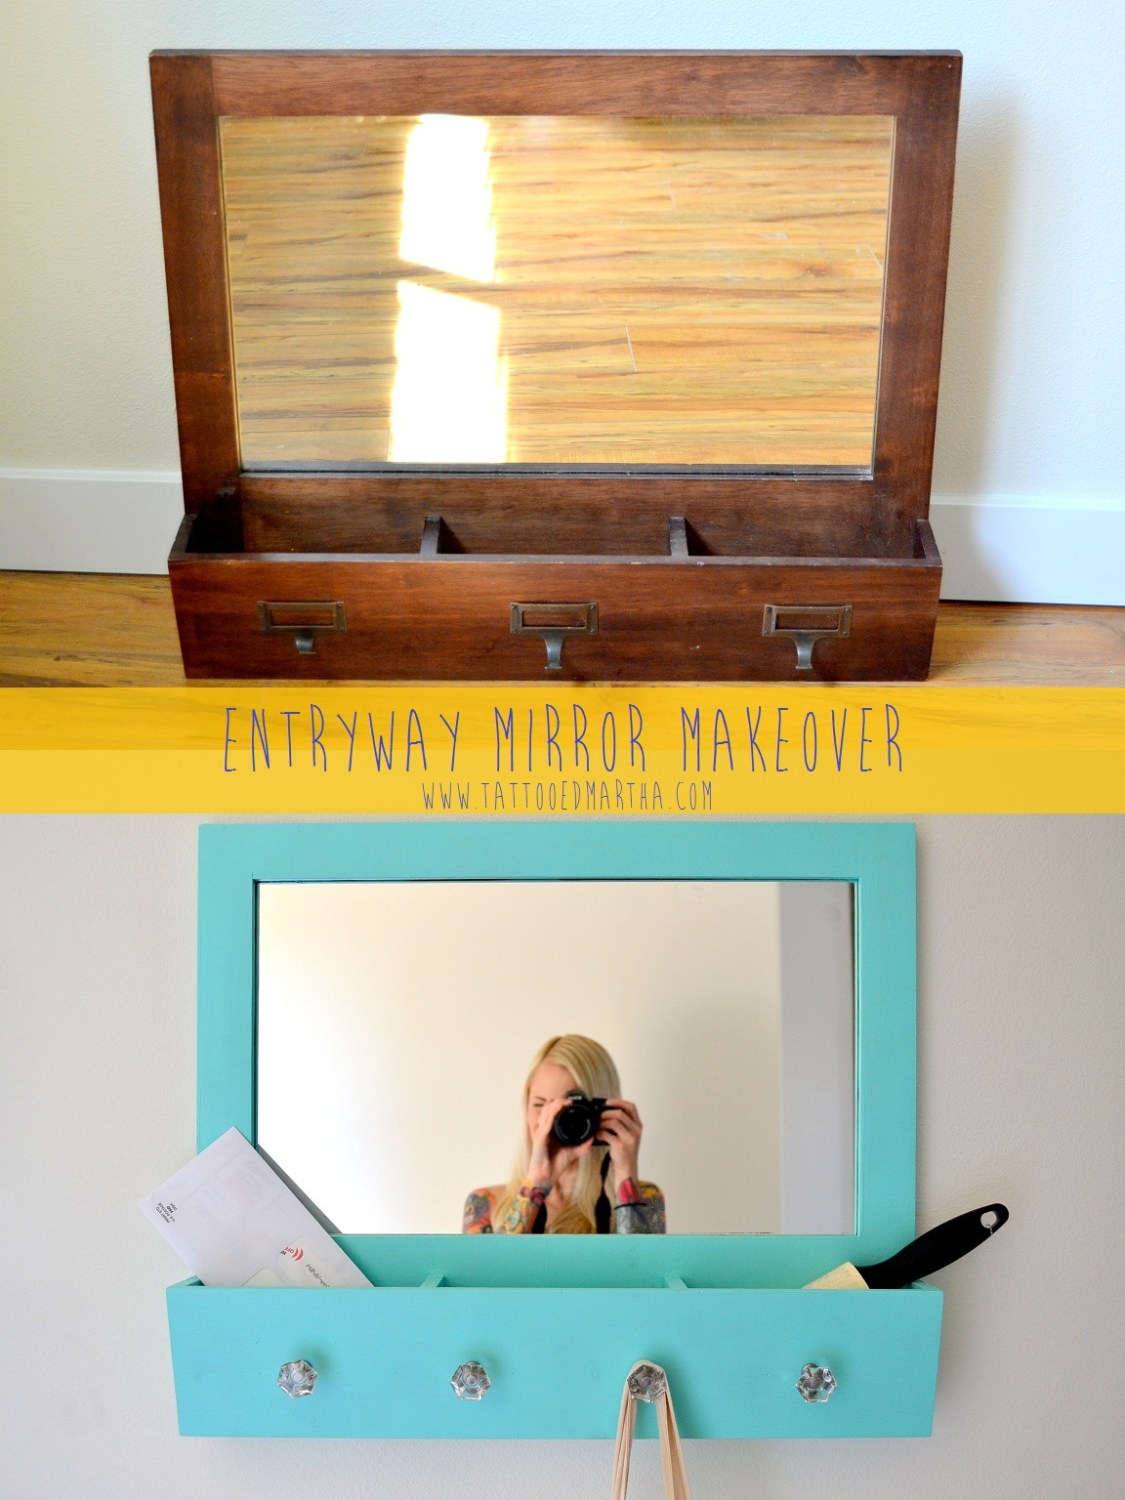 Tattooed Martha - Entryway Mirror Makeover (1)